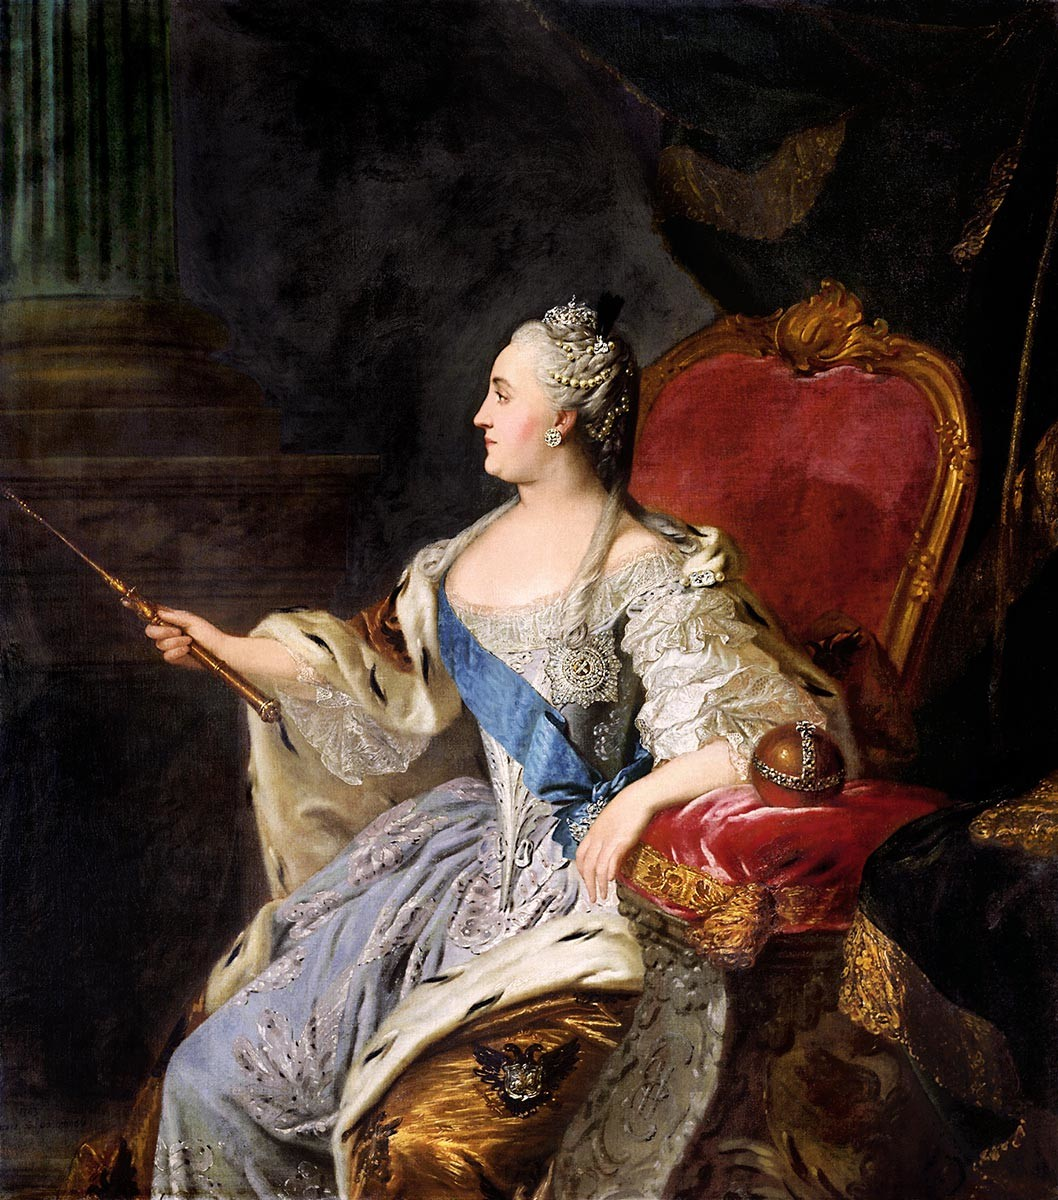 F.Rokotov. Portrait of Catherine the Great, 1763